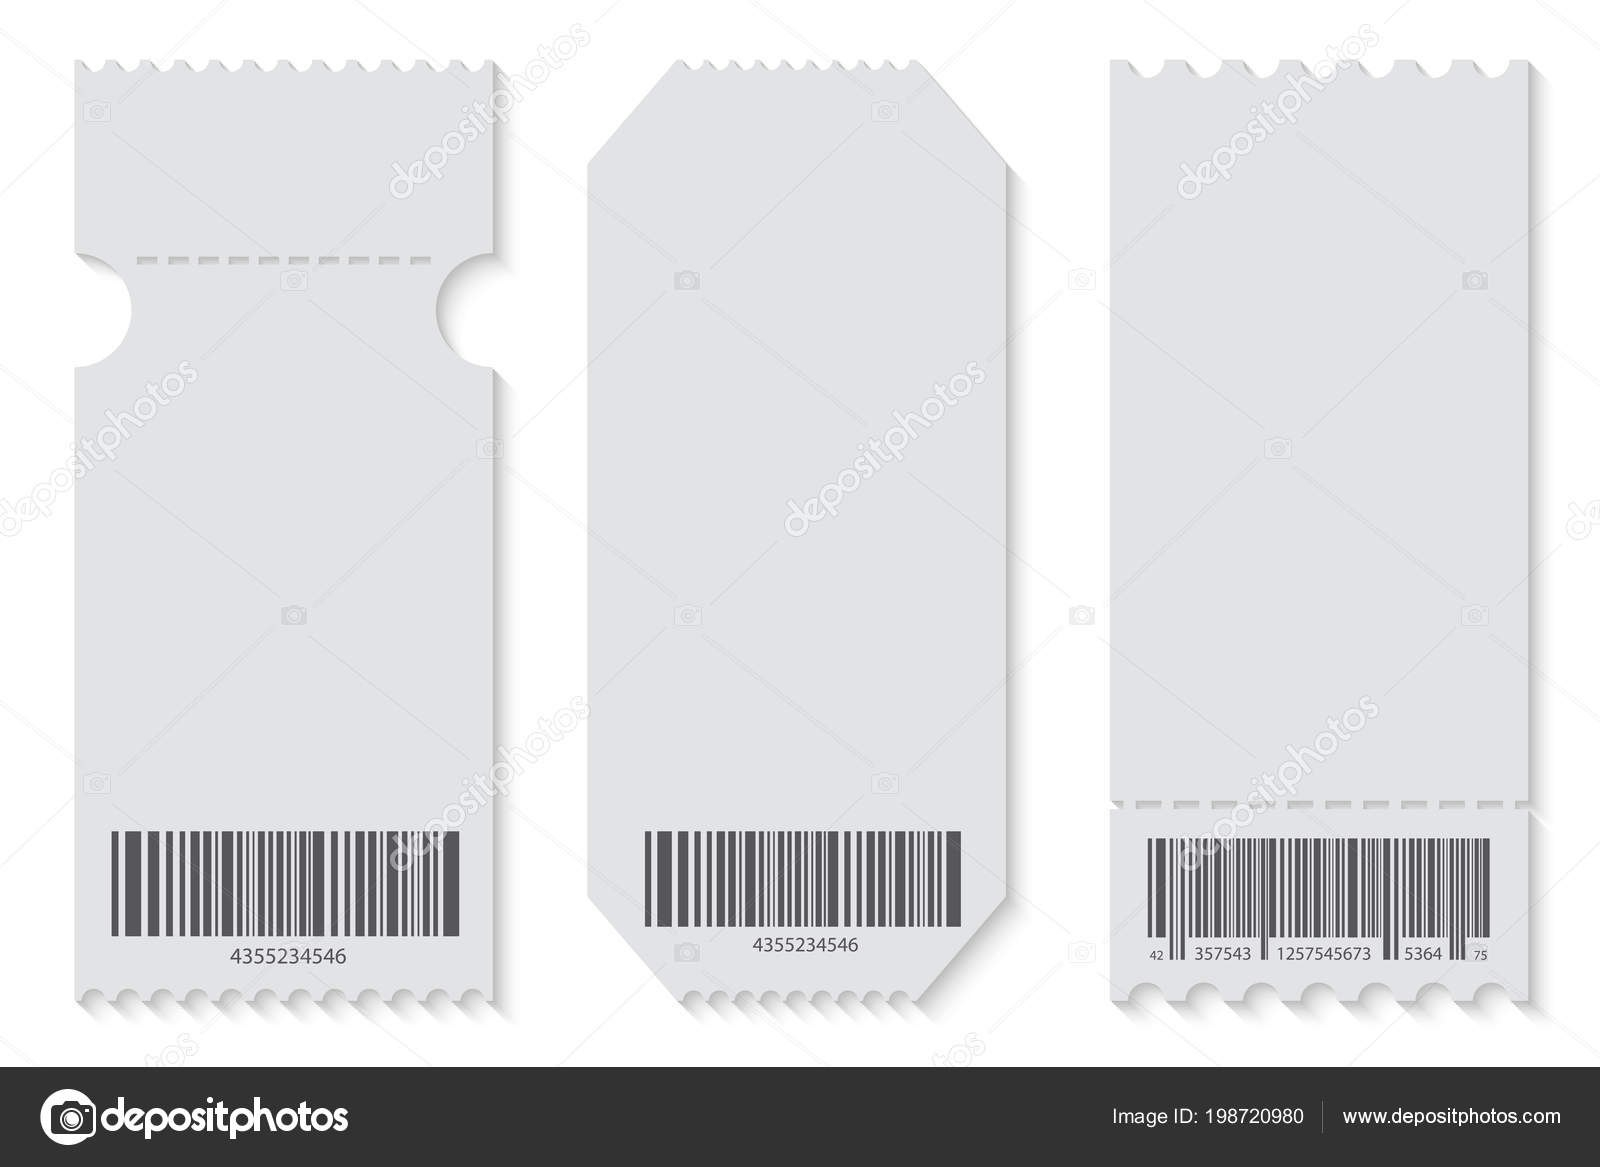 Creative Vector Illustration Of Empty Ticket Template Mockup Set With Regard To Blank Train Ticket Template